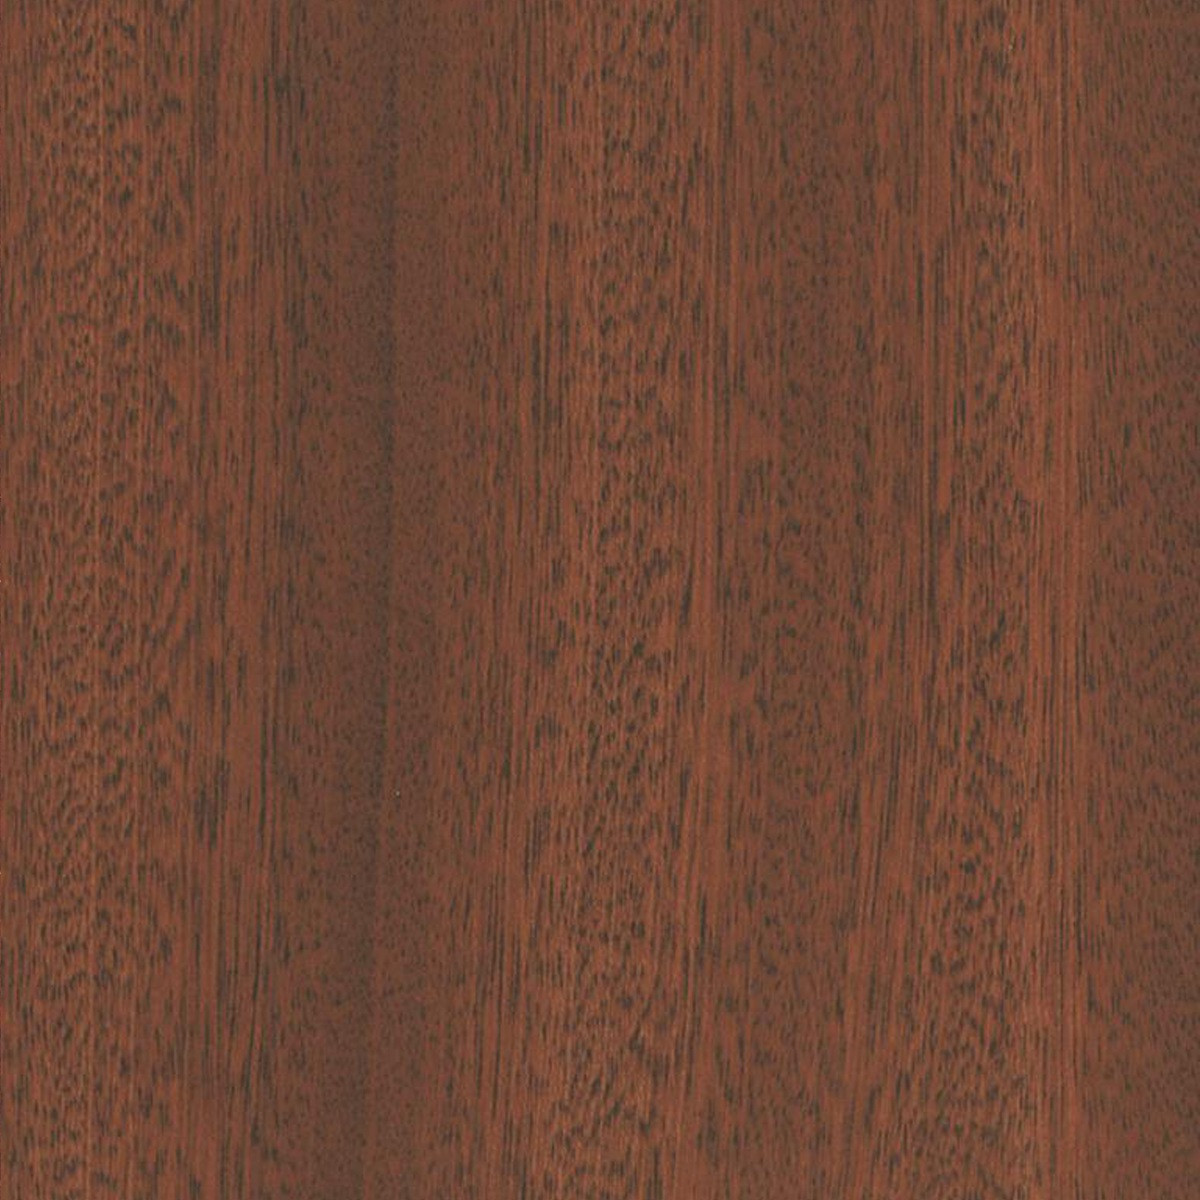 discount hardwood flooring knoxville tn of flooring design ideas find ideas and inspiration for flooring inside 35 awesome click flooring collection